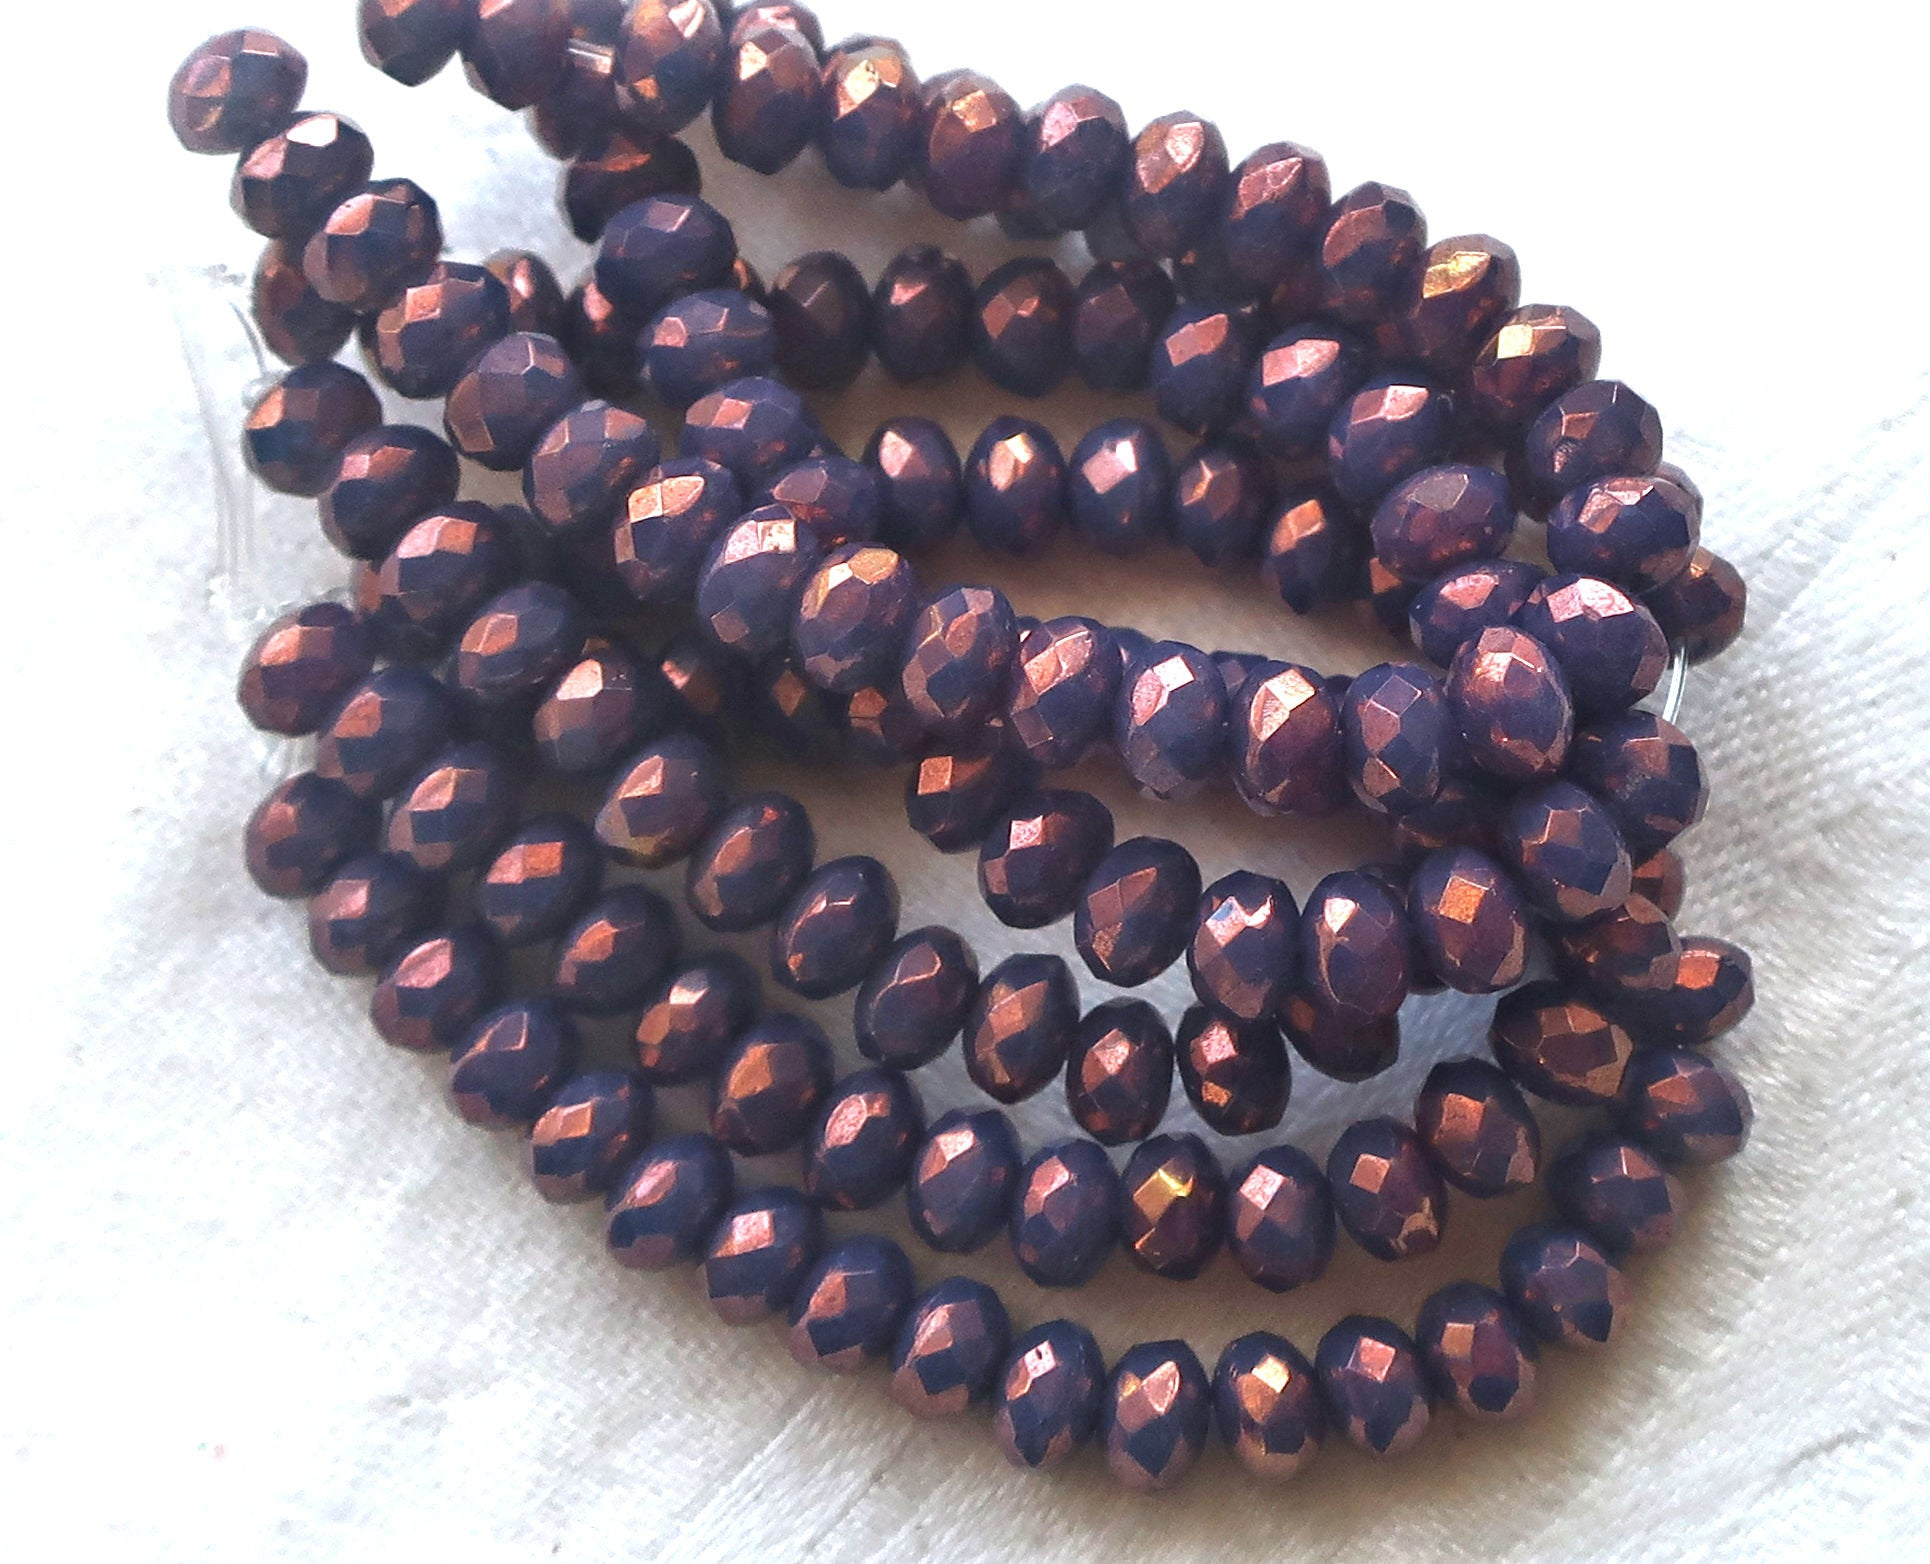 20pcs 3x5mm Purple Luster Czech Beads Rondelle Beads Faceted Beads Glass Beads Donut Beads Jewelry Making Beading Supplies DIY Supplies